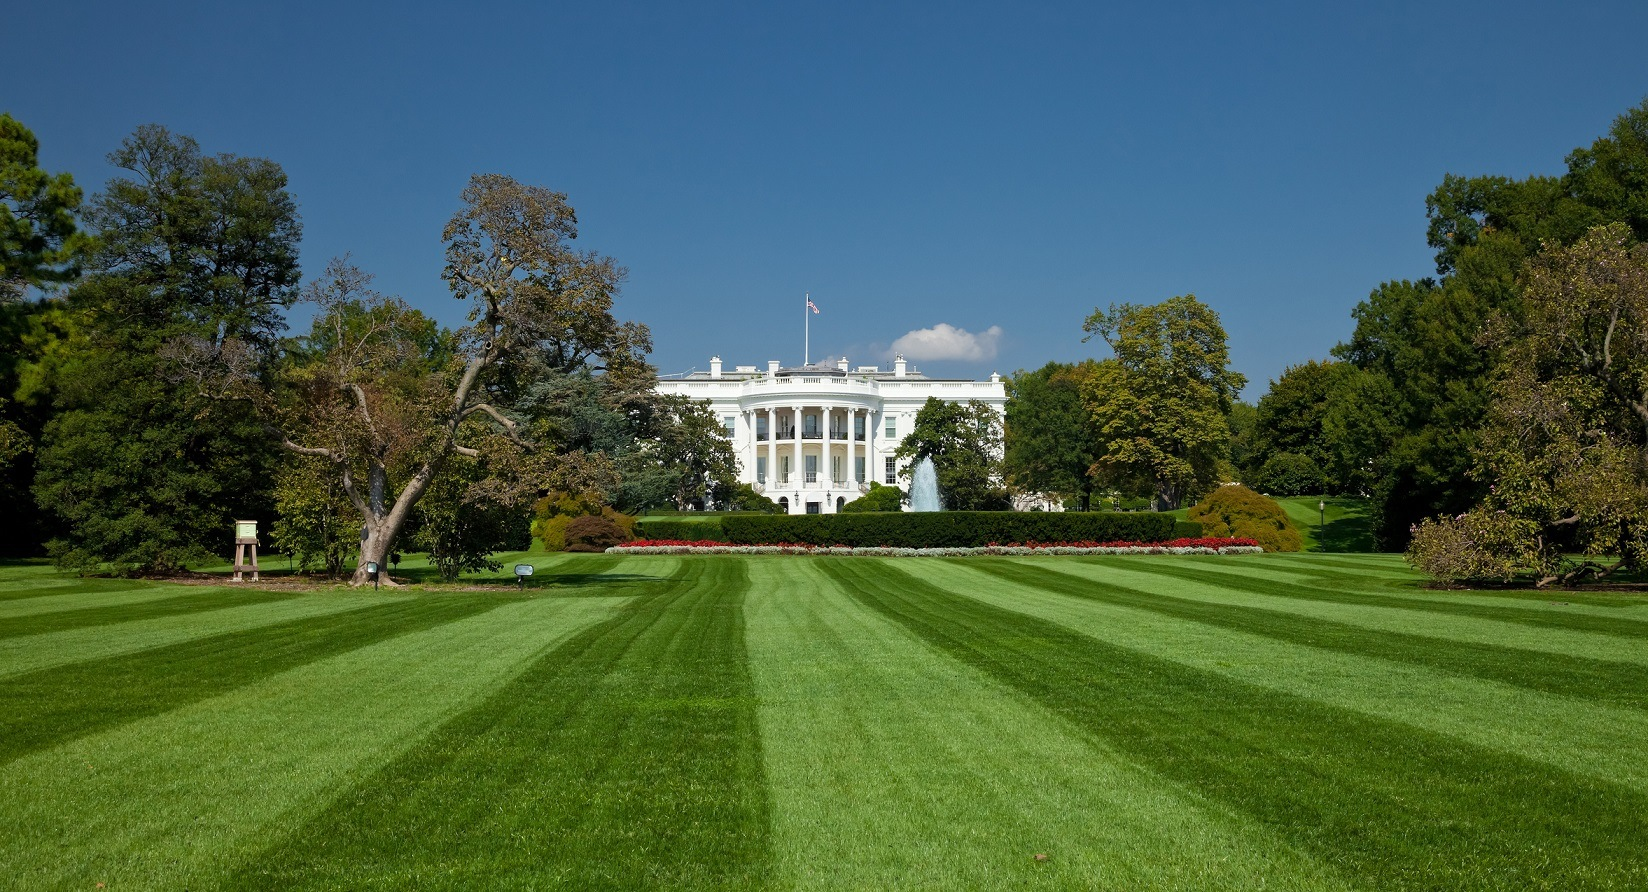 White House in Washington D C From front lawn view